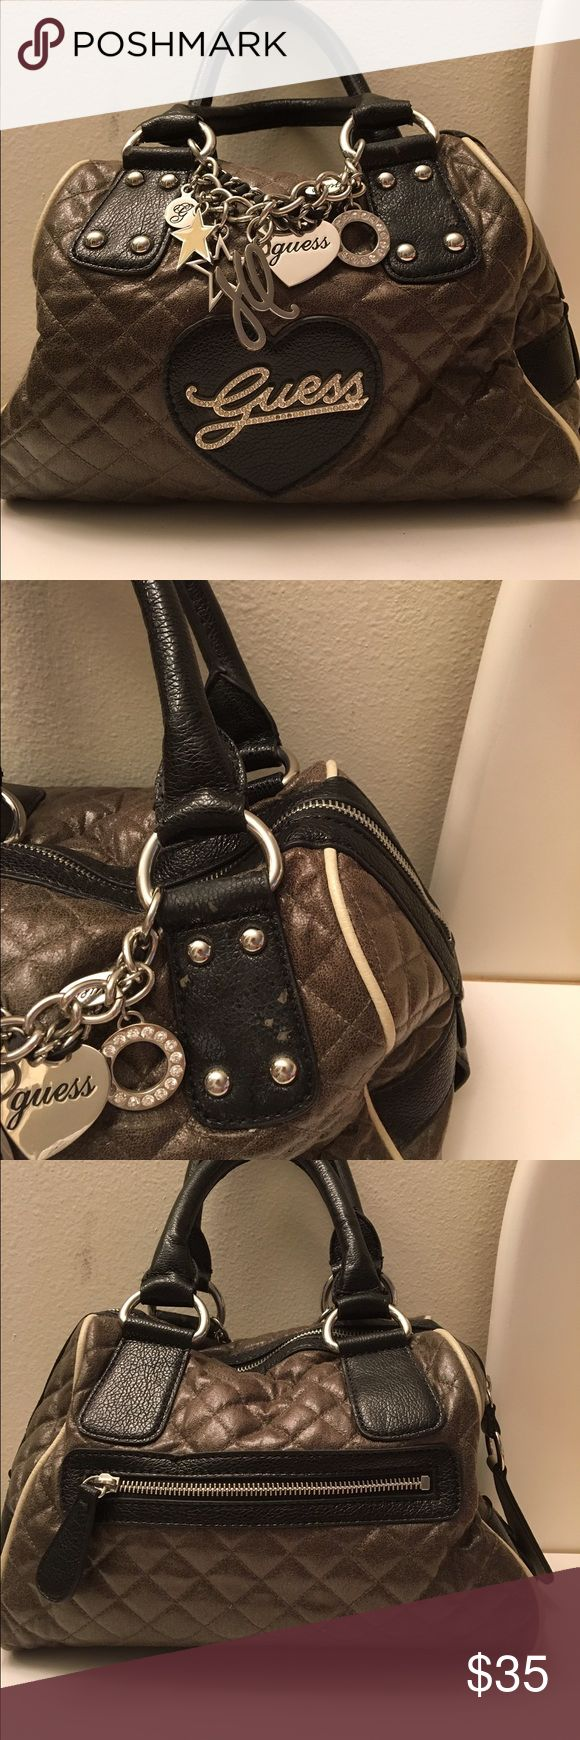 Bag Guess bag.... very nice colors. Has some wear and tear around the handle as shown in the picture, other than that it's in ok condition. Guess Bags Mini Bags